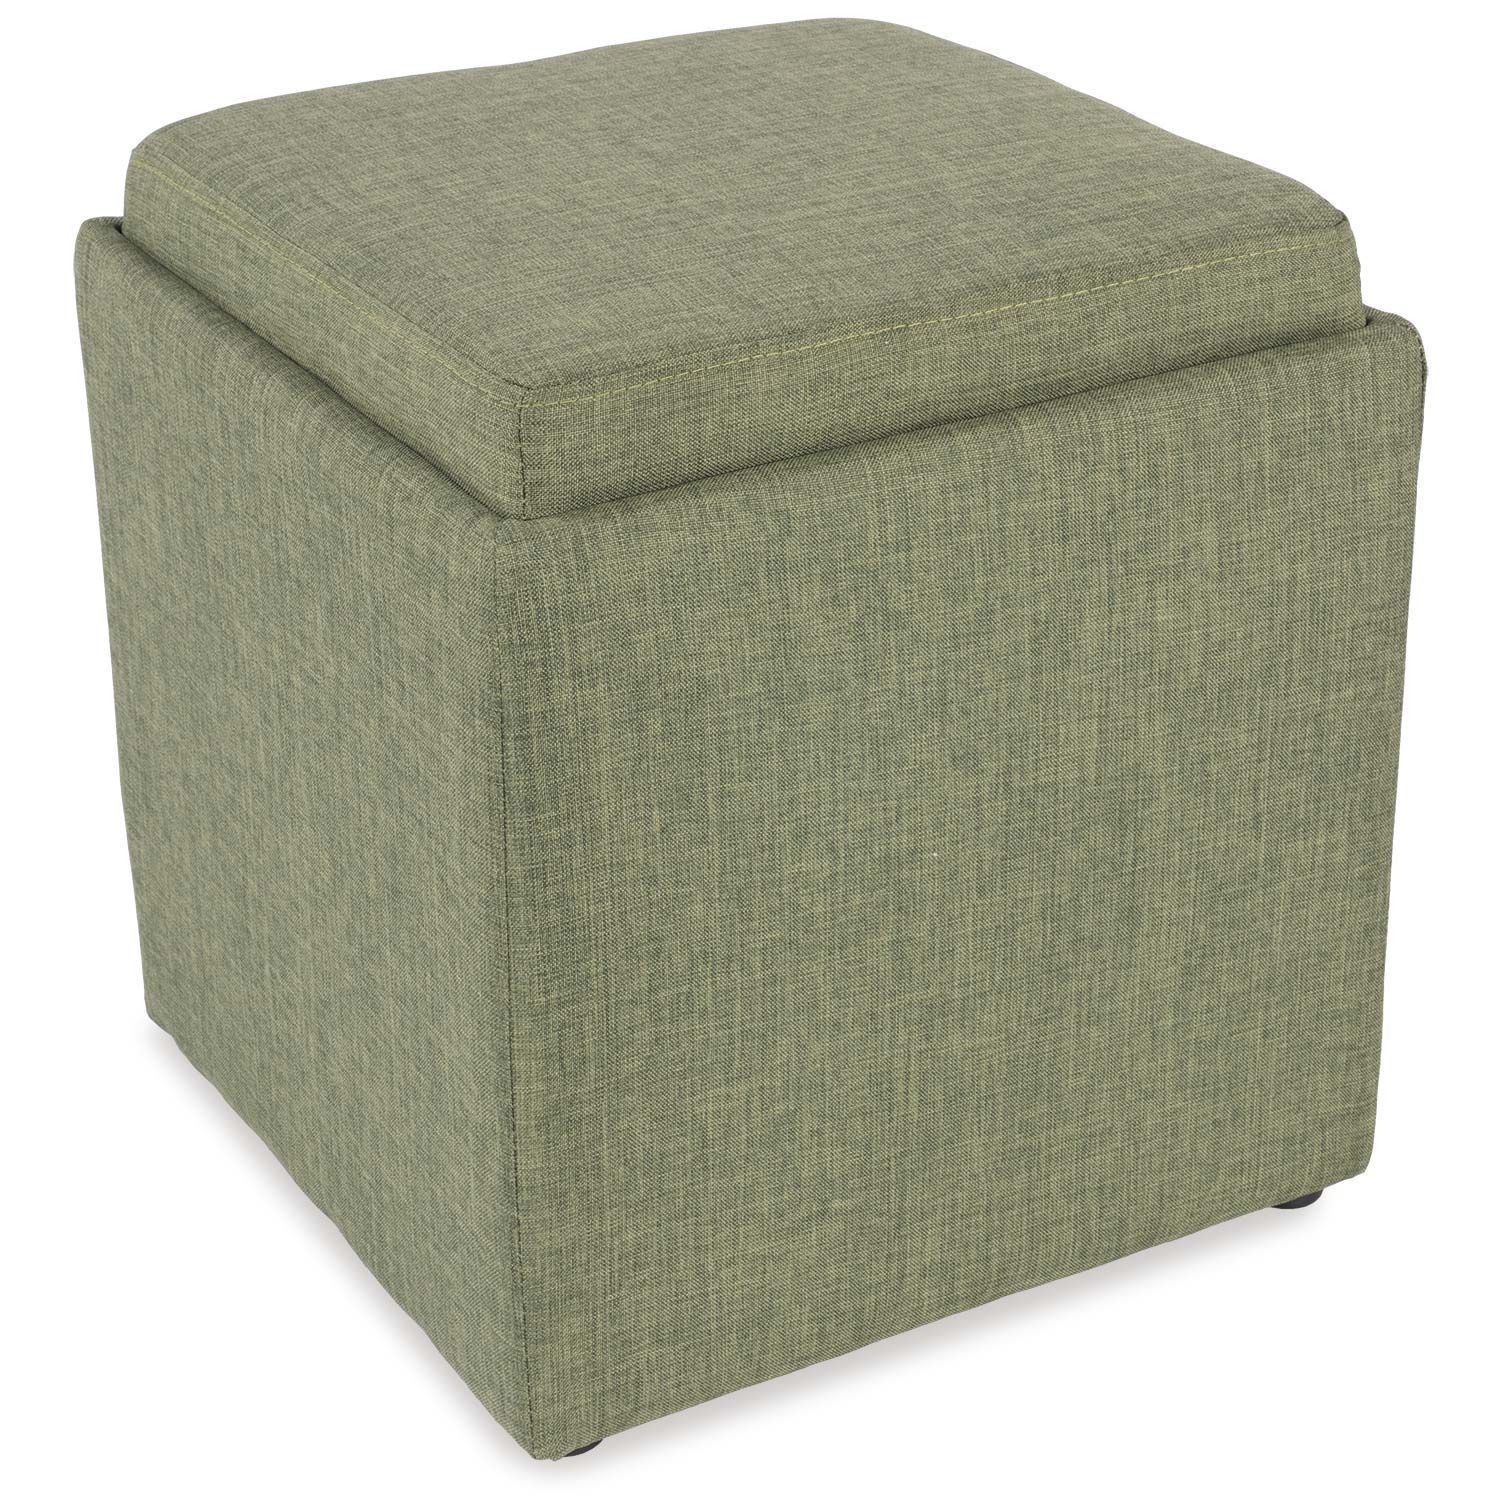 Fern Green Storage Ottoman with Tray